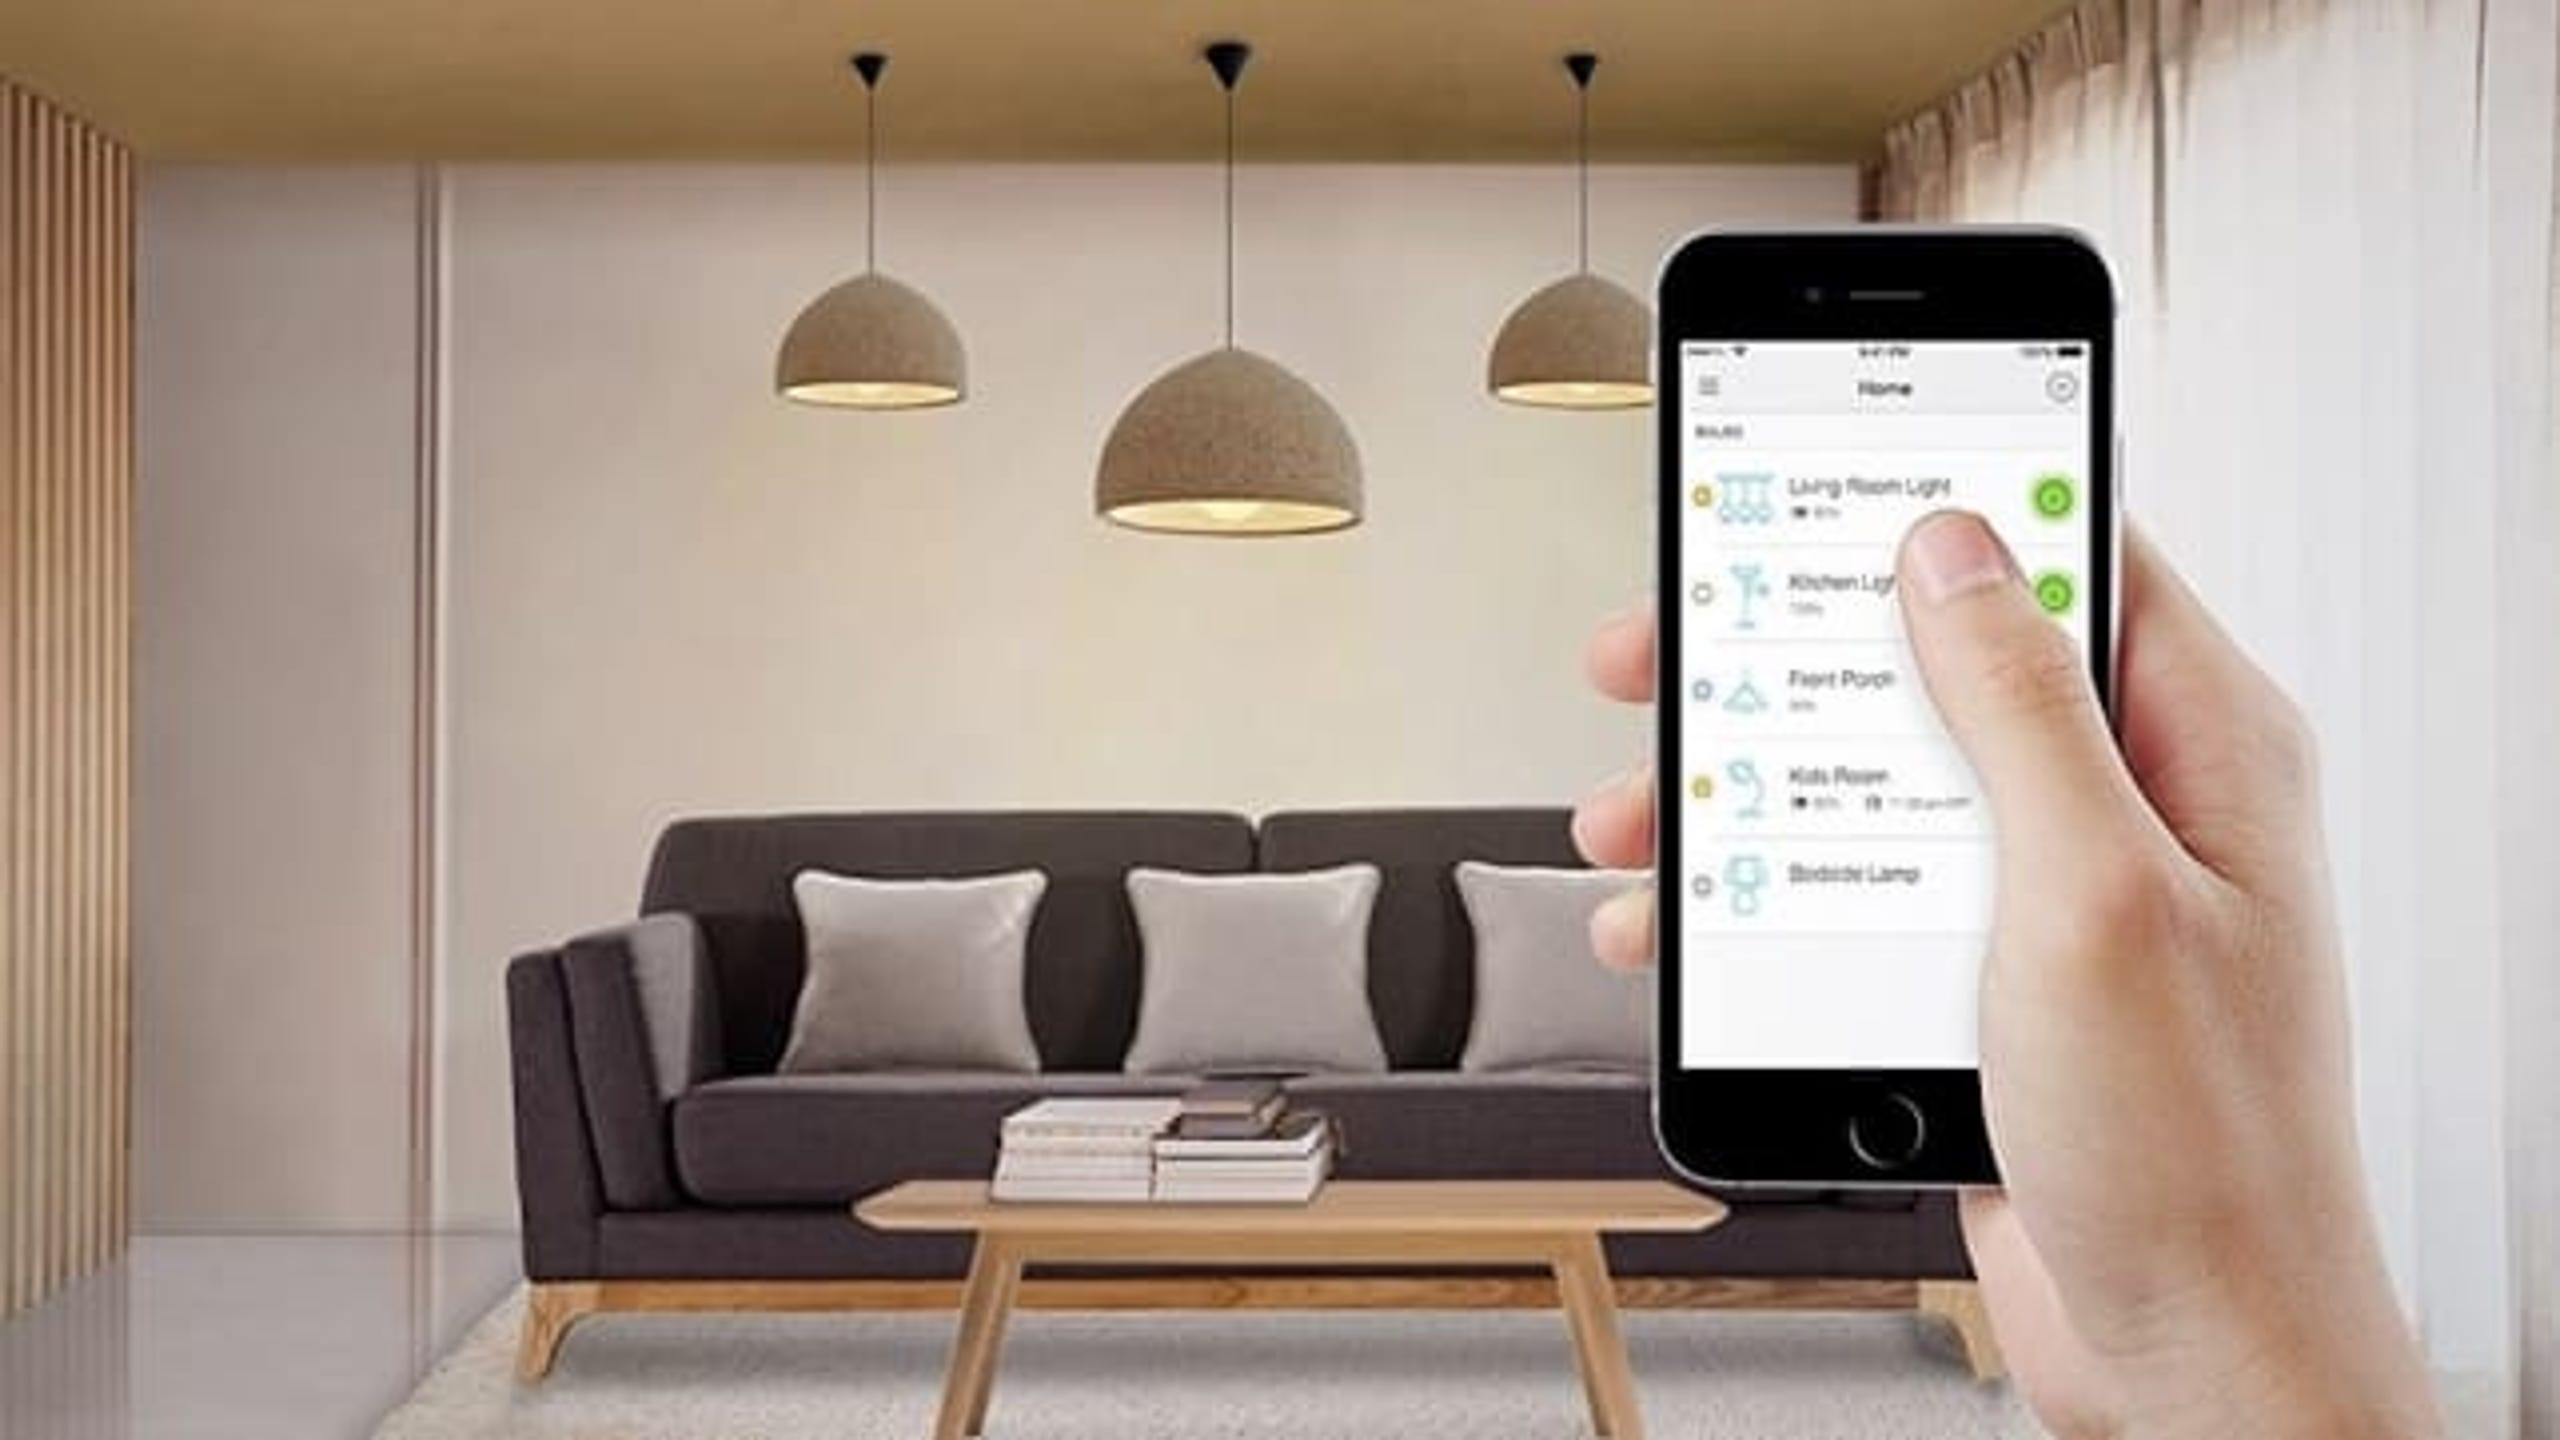 "Smart bulbs can transform your home, especially in the bedroom where you won&rsquo;t have to get up to shut off the lights when it&rsquo;s time to sleep. TP-Link makes a great smart bulb that you can use out the box, no hubs or other hardware required. (<a href=""https://www.amazon.com/dp/B01HXM8XHO/ref=as_li_ss_tl?ie=UTF8&amp;linkCode=ll1&amp;tag=usatgallery-20&amp;linkId=02b5d5049c645d48e533edee4ea9bdcc&amp;language=en_US"">$22.95 on Amazon</a>)"